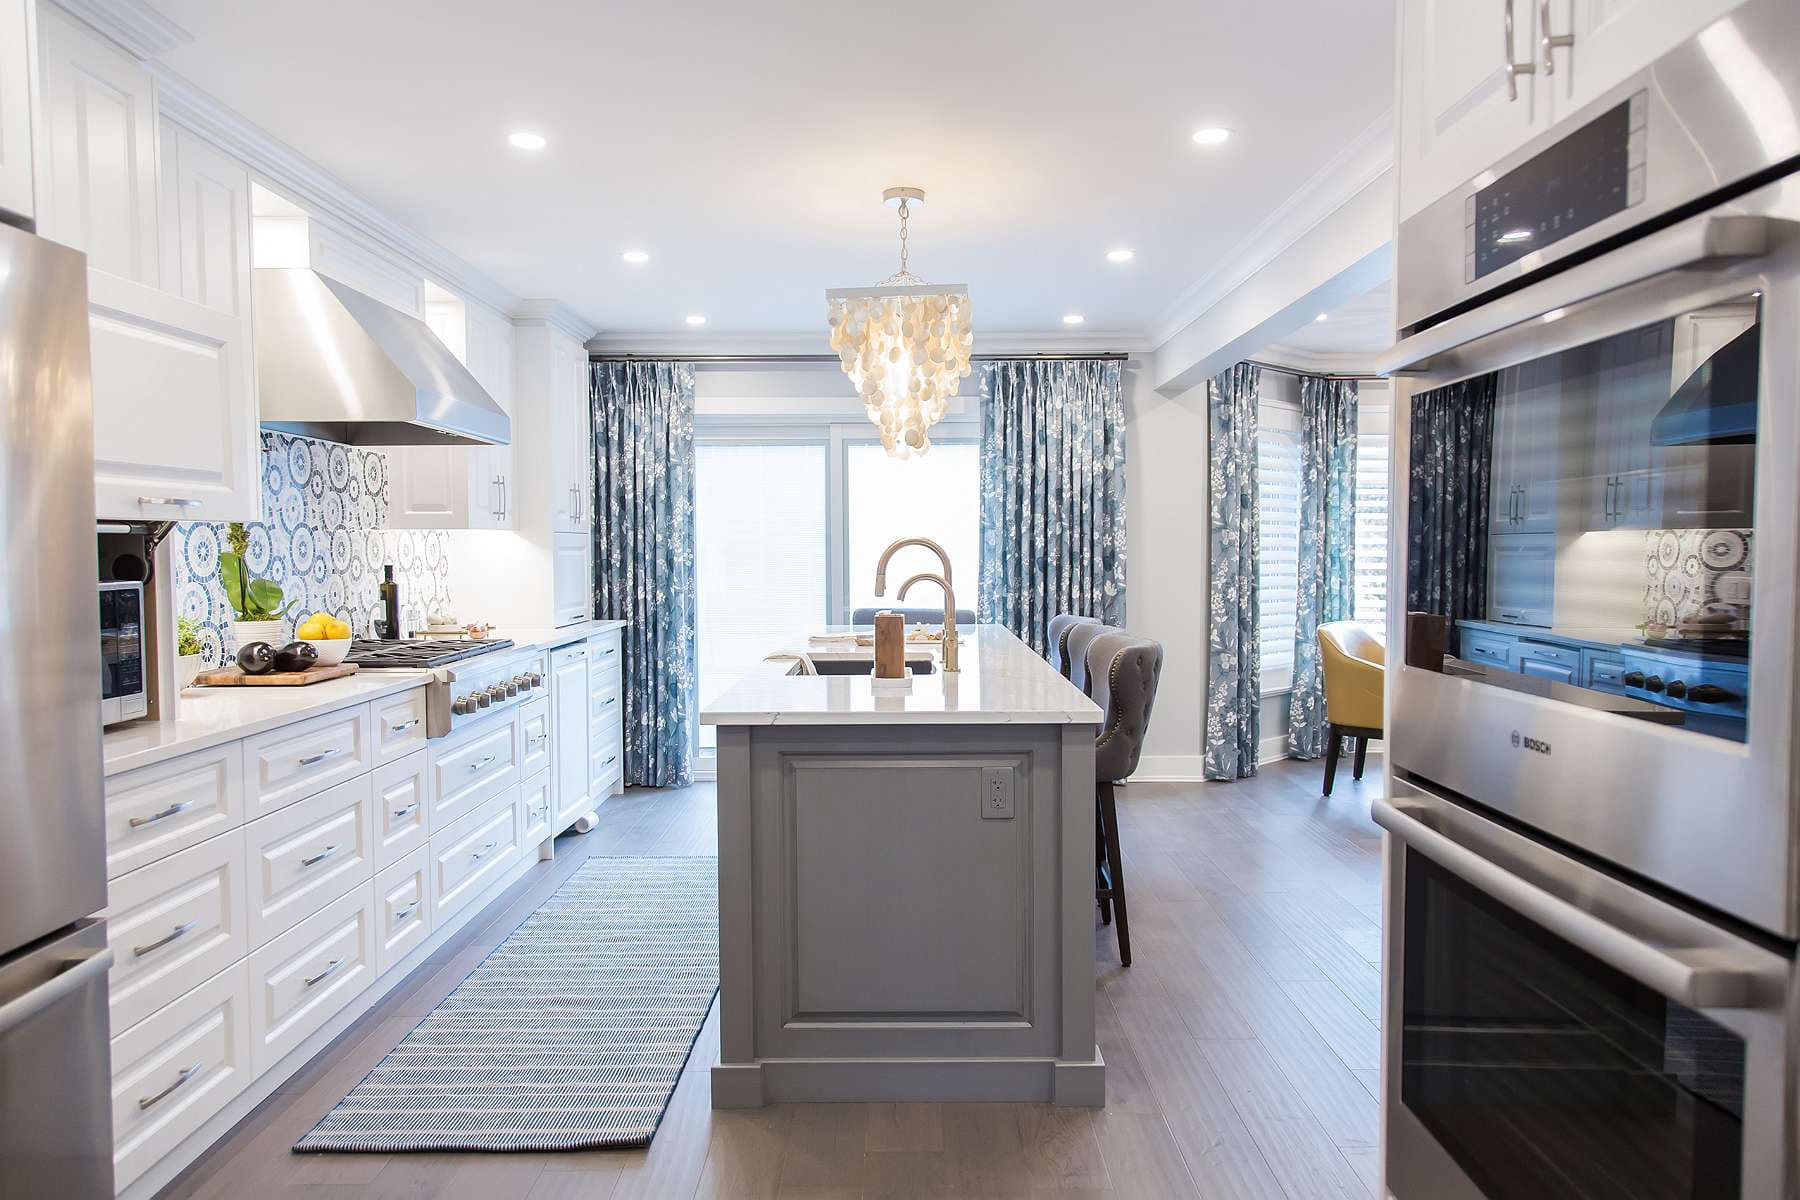 Kitchen island in dark grey with white and grey quartz top with black undermount granite sink and stainless steel Vent-a-hood exhaust and linear capiz shell chandelier with Chantilly lace cabinets and double wall ovens and Dash and Albert Samson blue and natural runner.